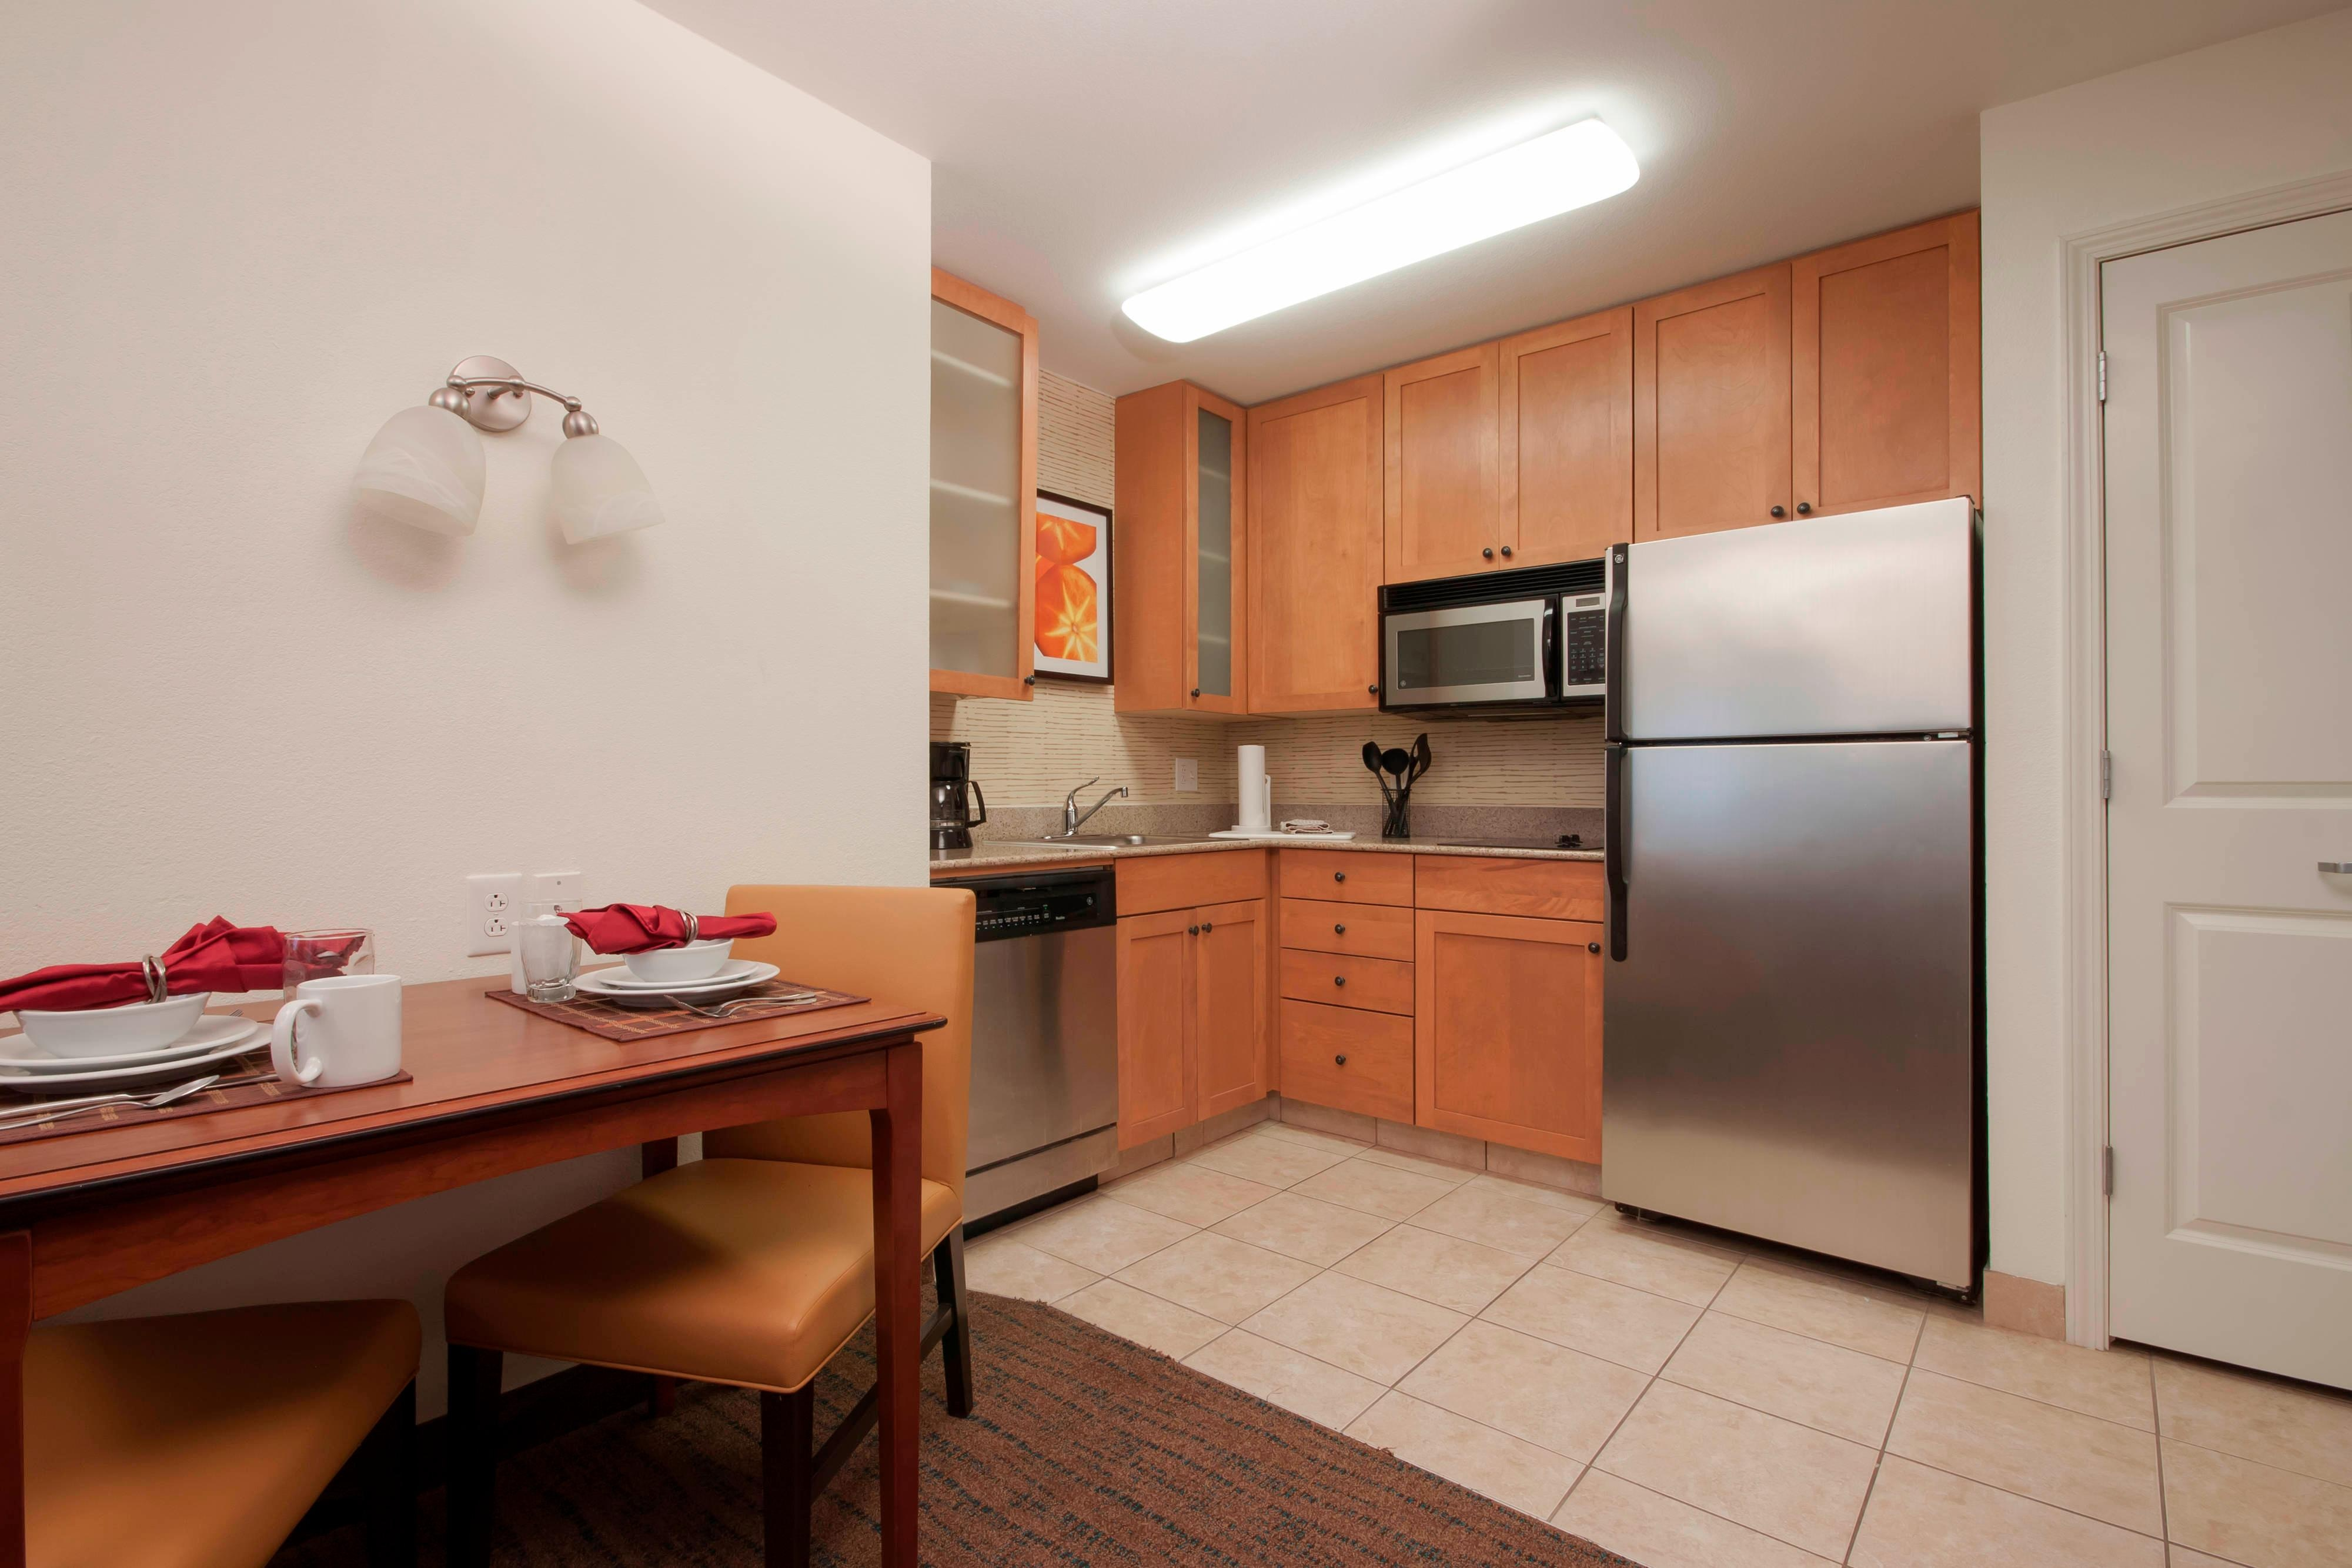 San Antonio Hotel Studio Kitchen